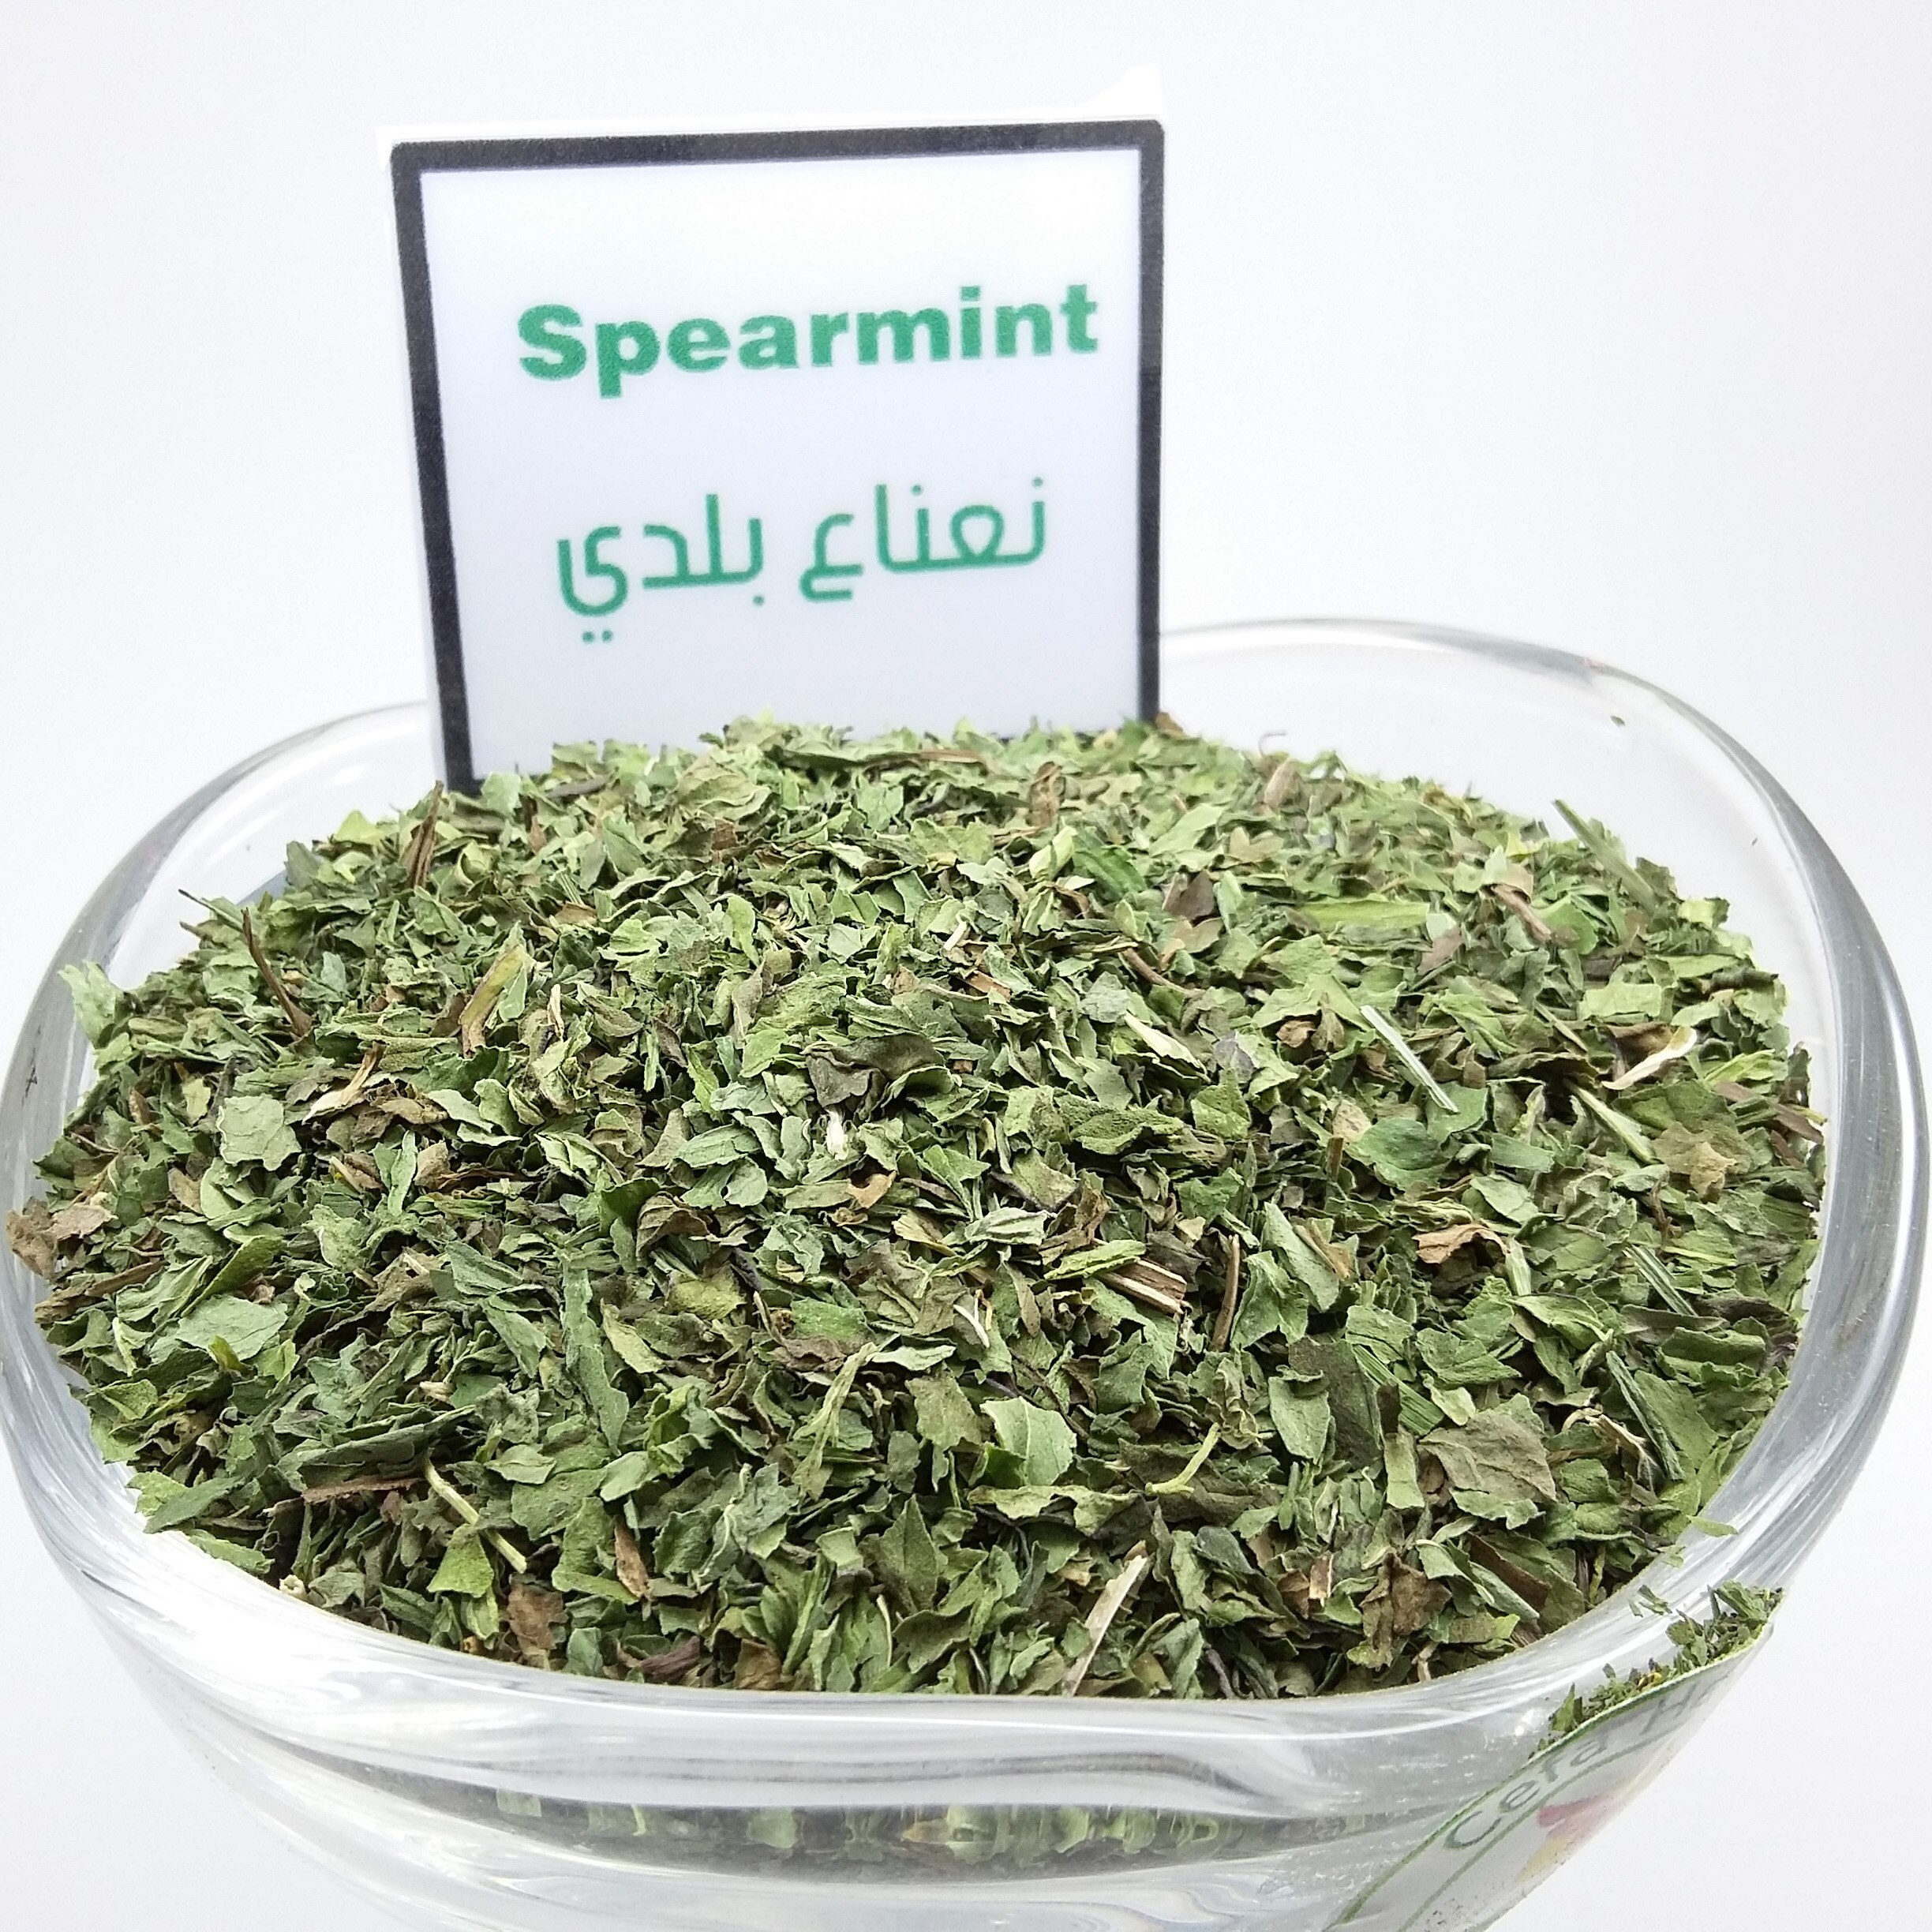 Kering Spearmint Teh Daun Cut